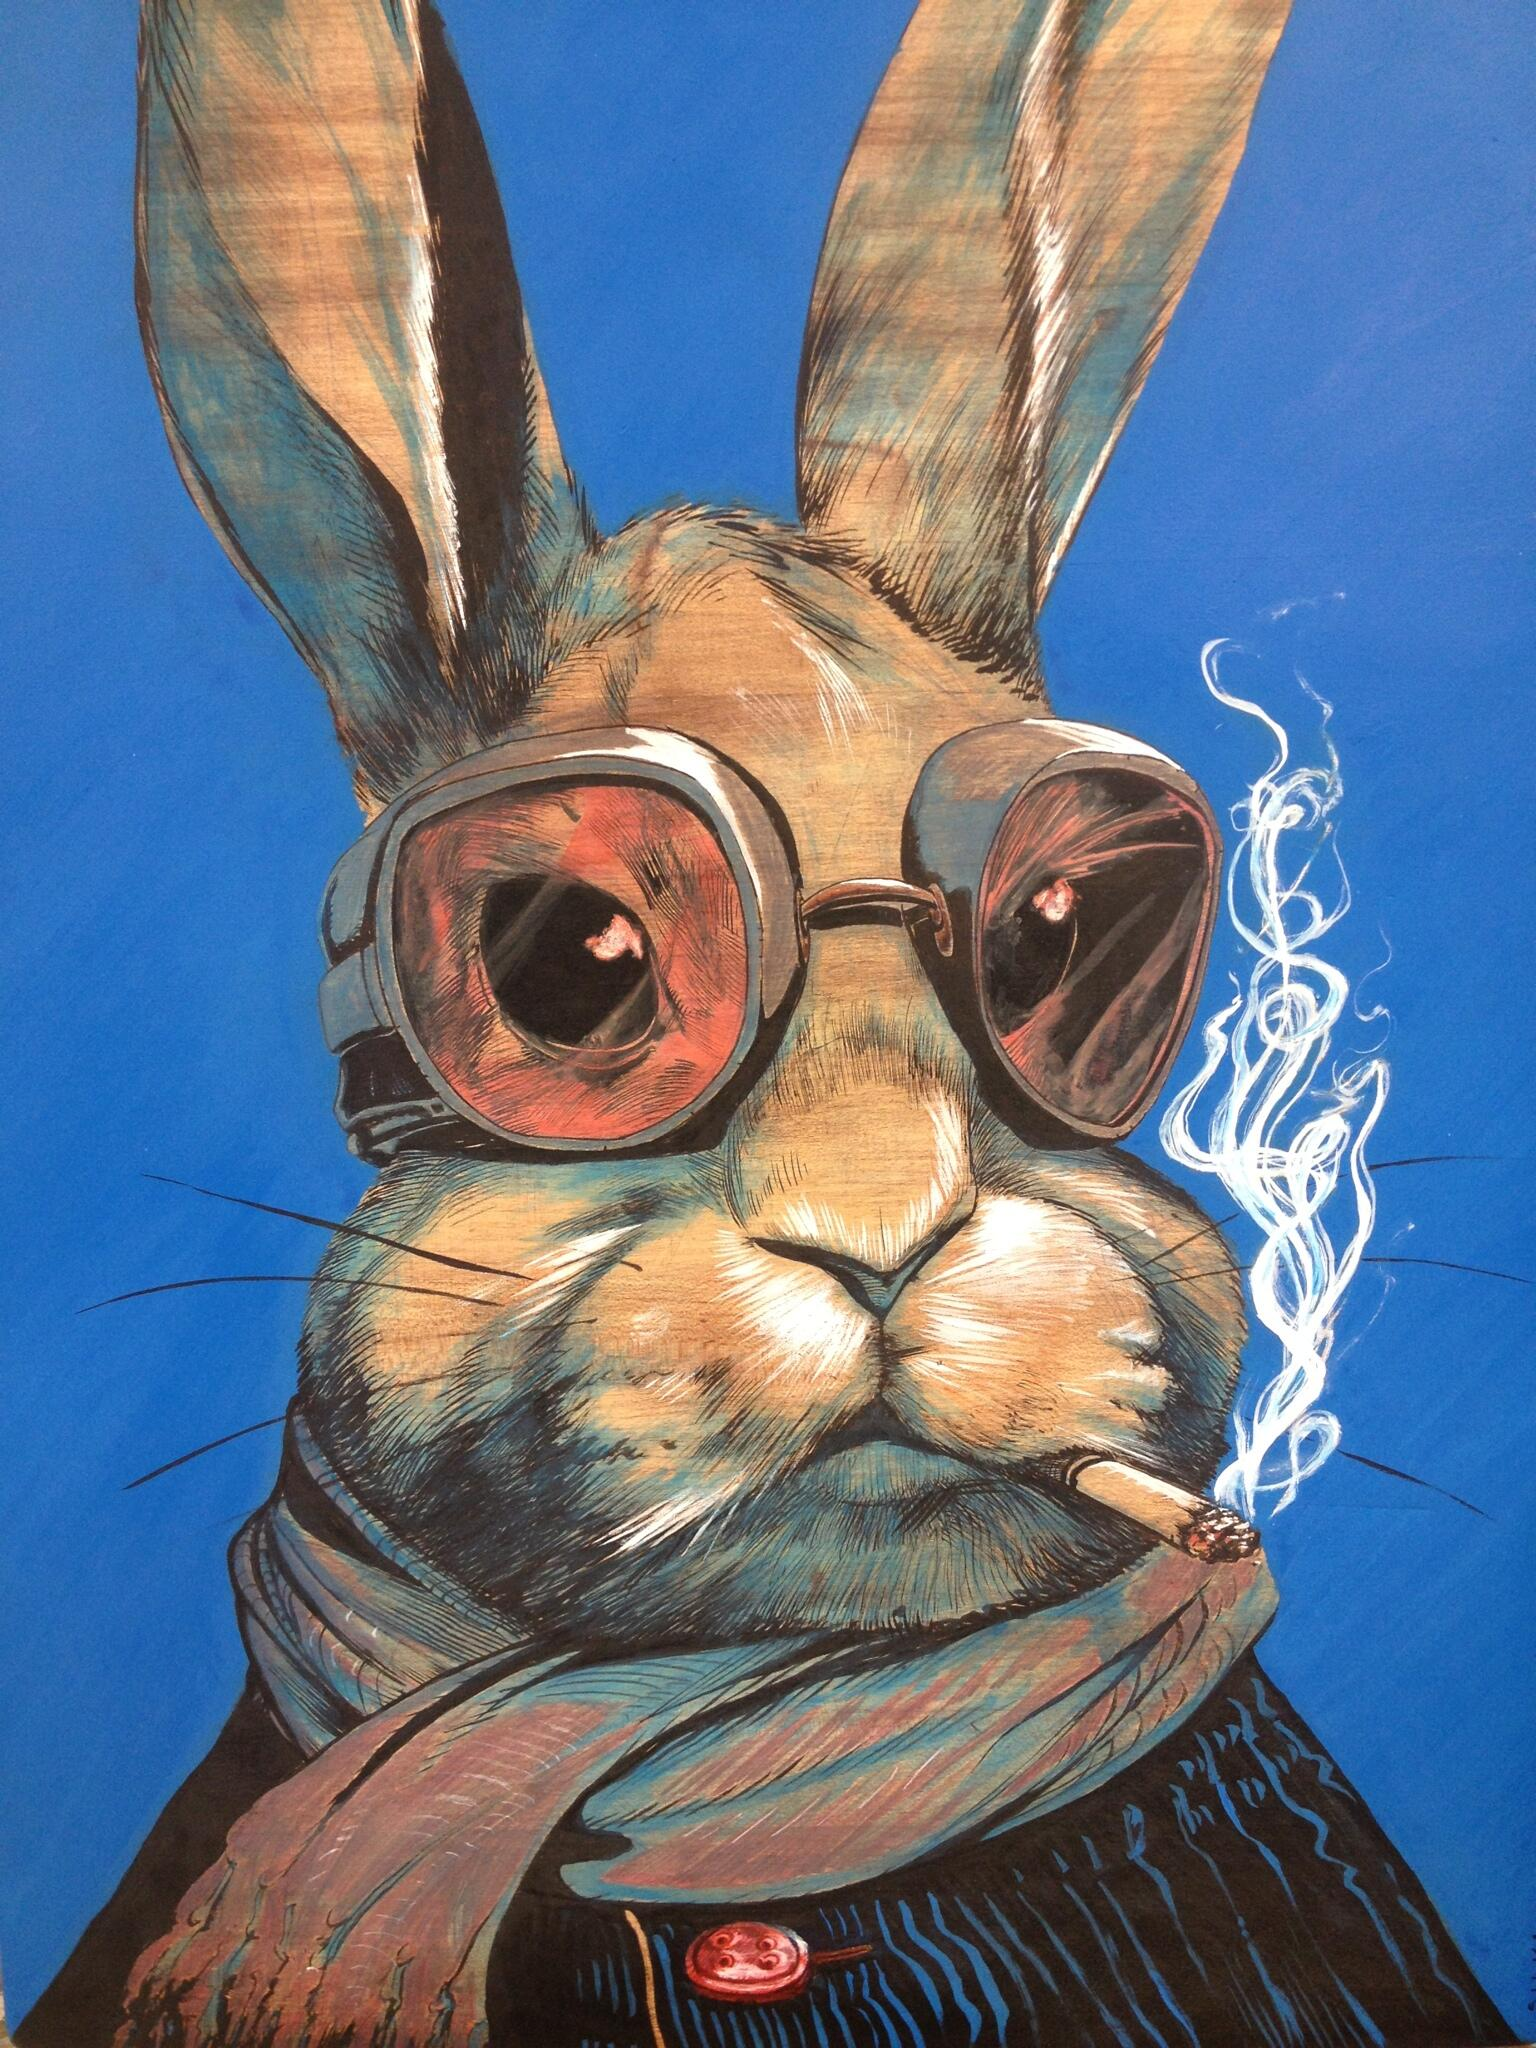 There was this old wooden cutting board lying around, so I brushed some ink on it and a rabbit appeared… http://t.co/KR3fgwPTuR